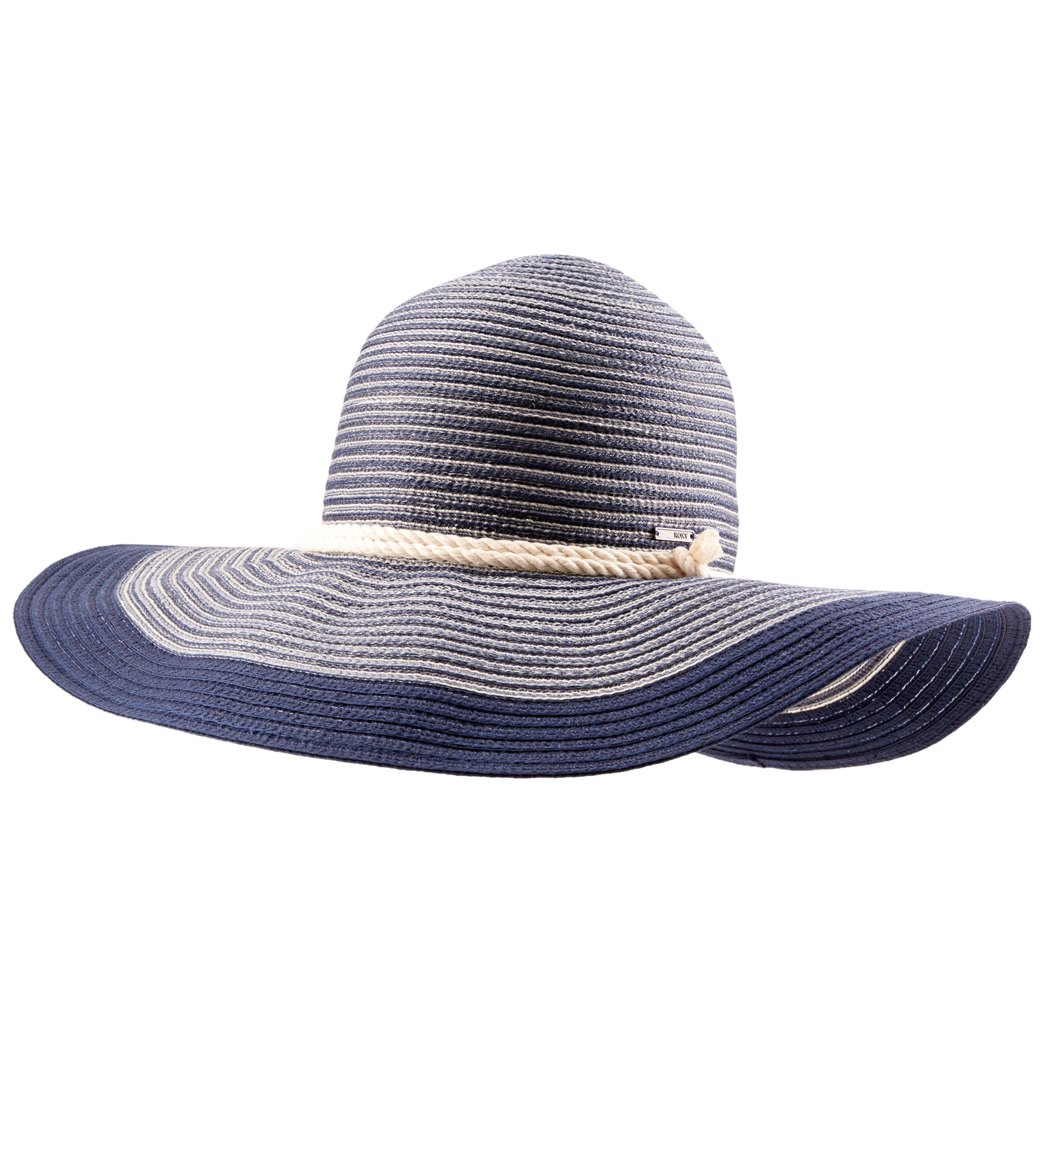 Roxy Ocean Dream Sun Hat at SwimOutlet.com 94bf408d73b